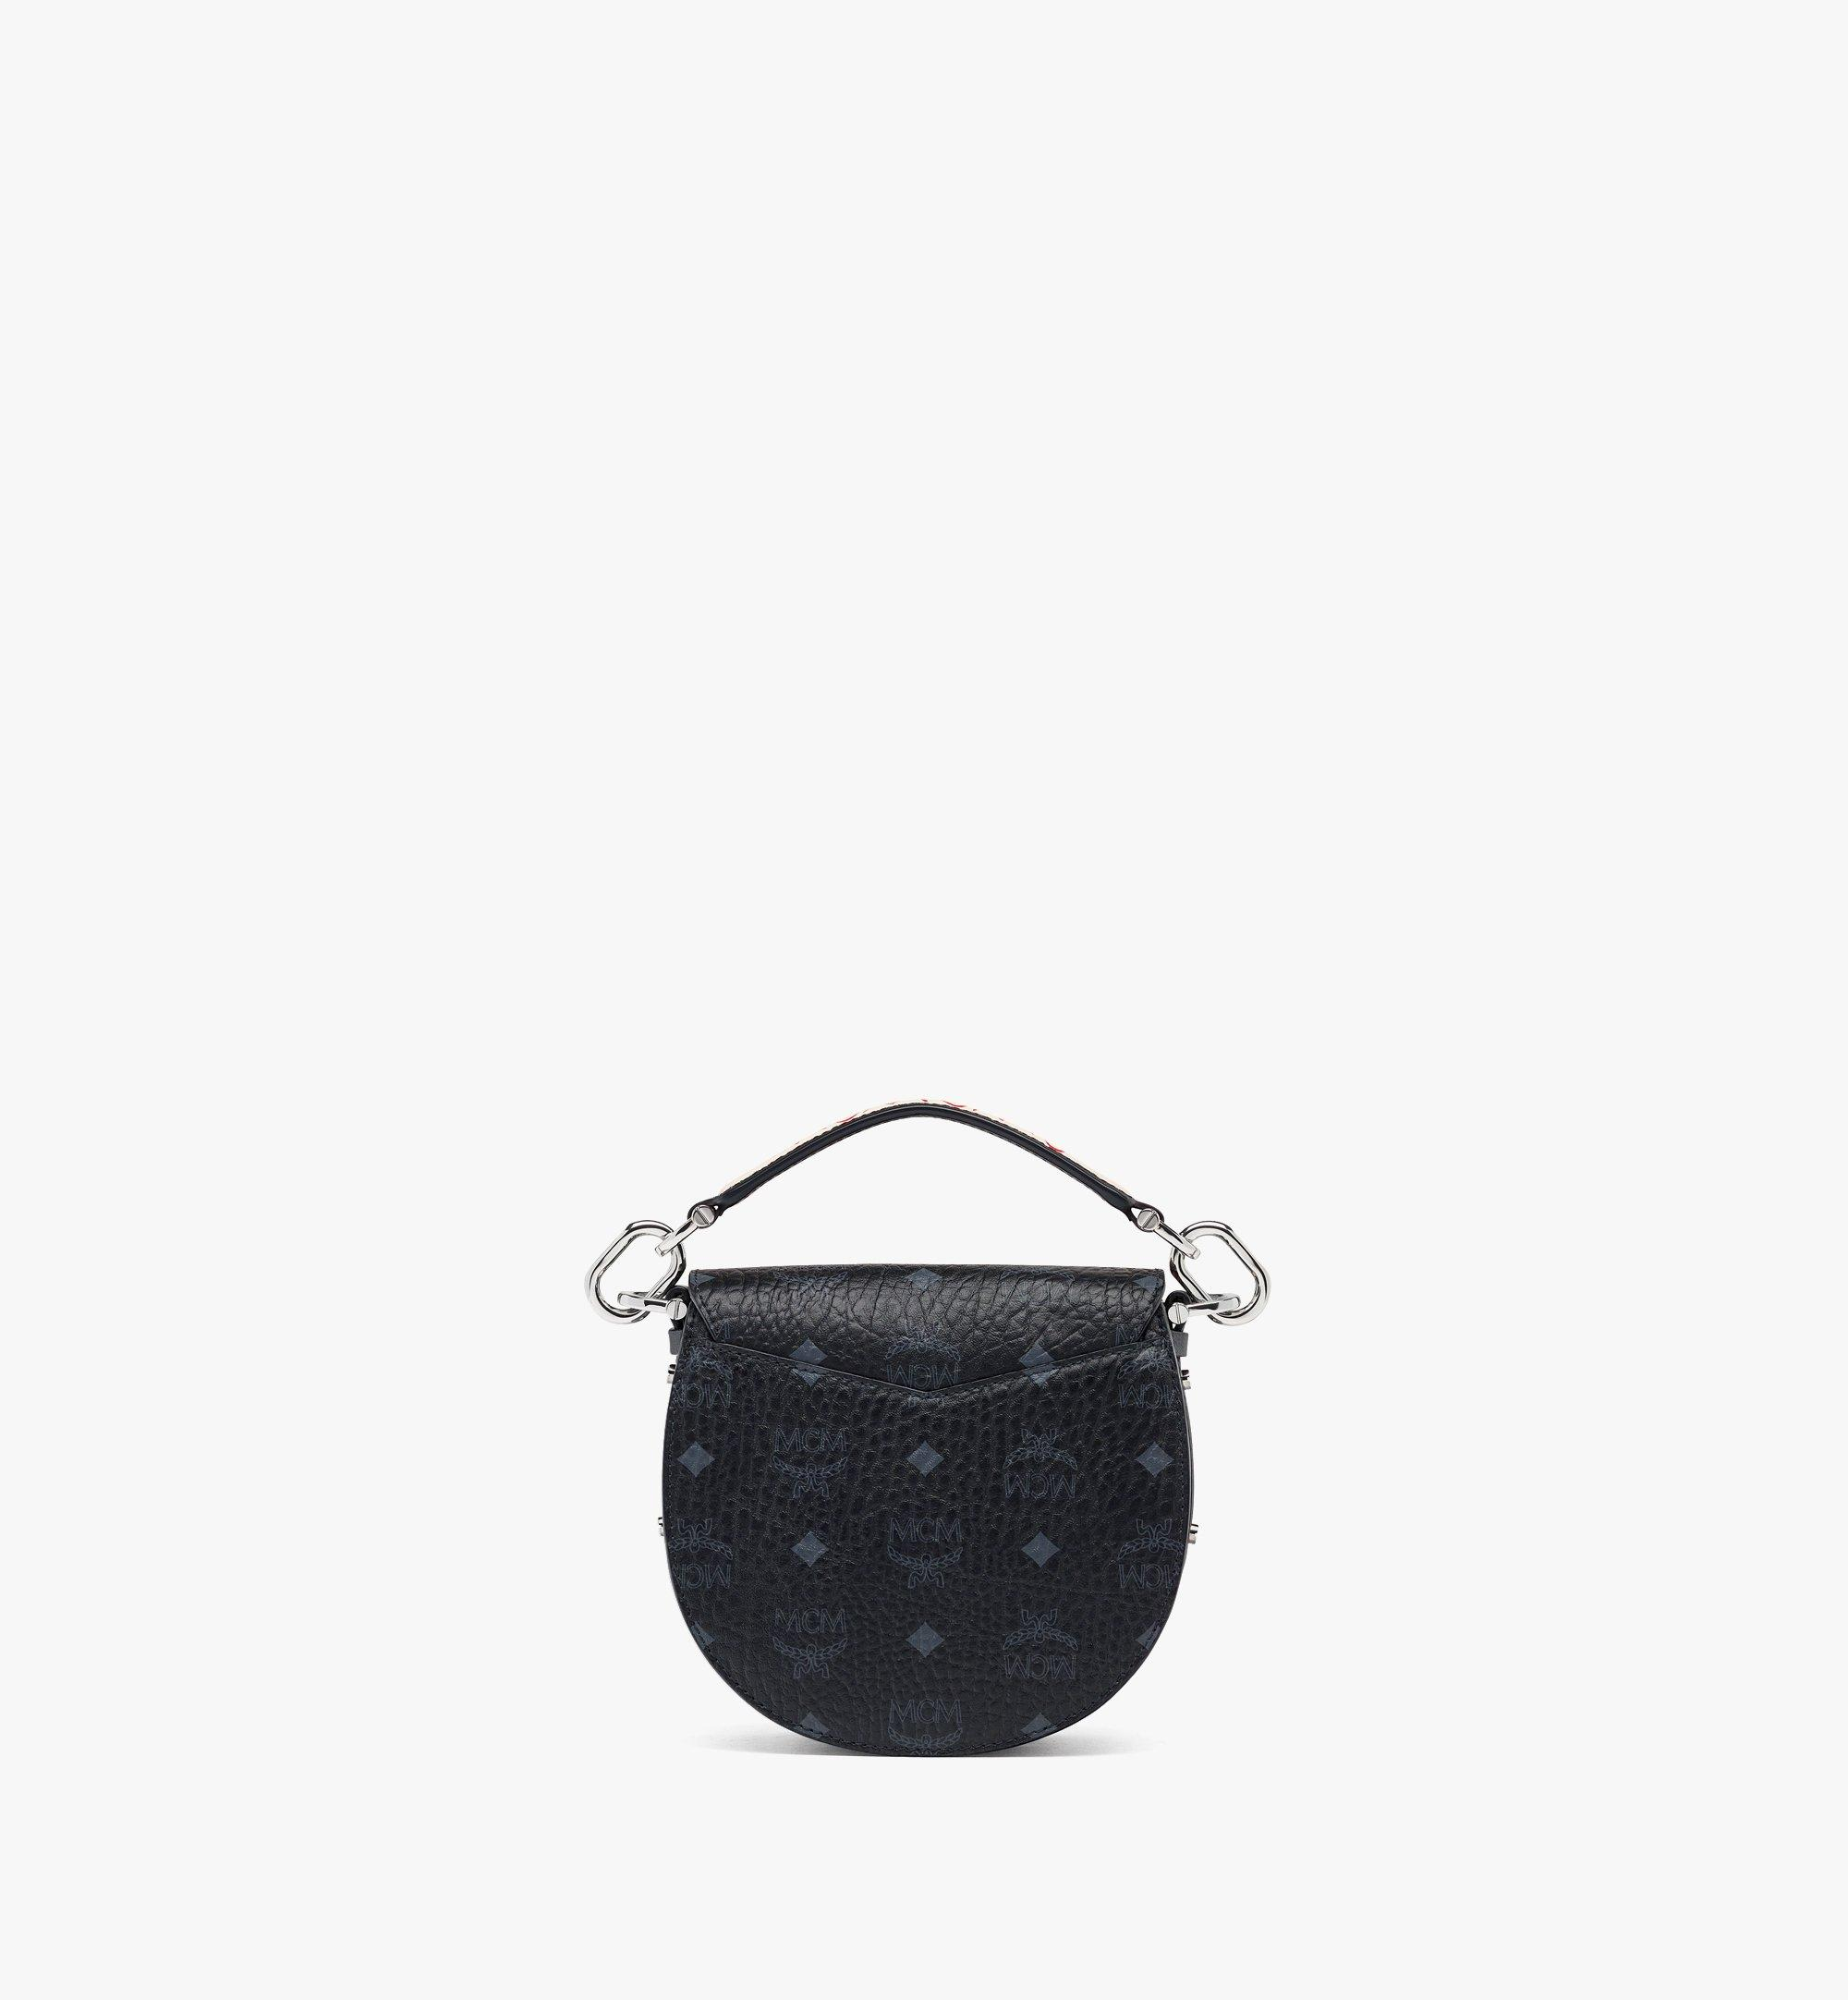 MCM Upcycling Project Patricia Shoulder Bag in Marquage Visetos Black MWSBSUP01BK001 Alternate View 3